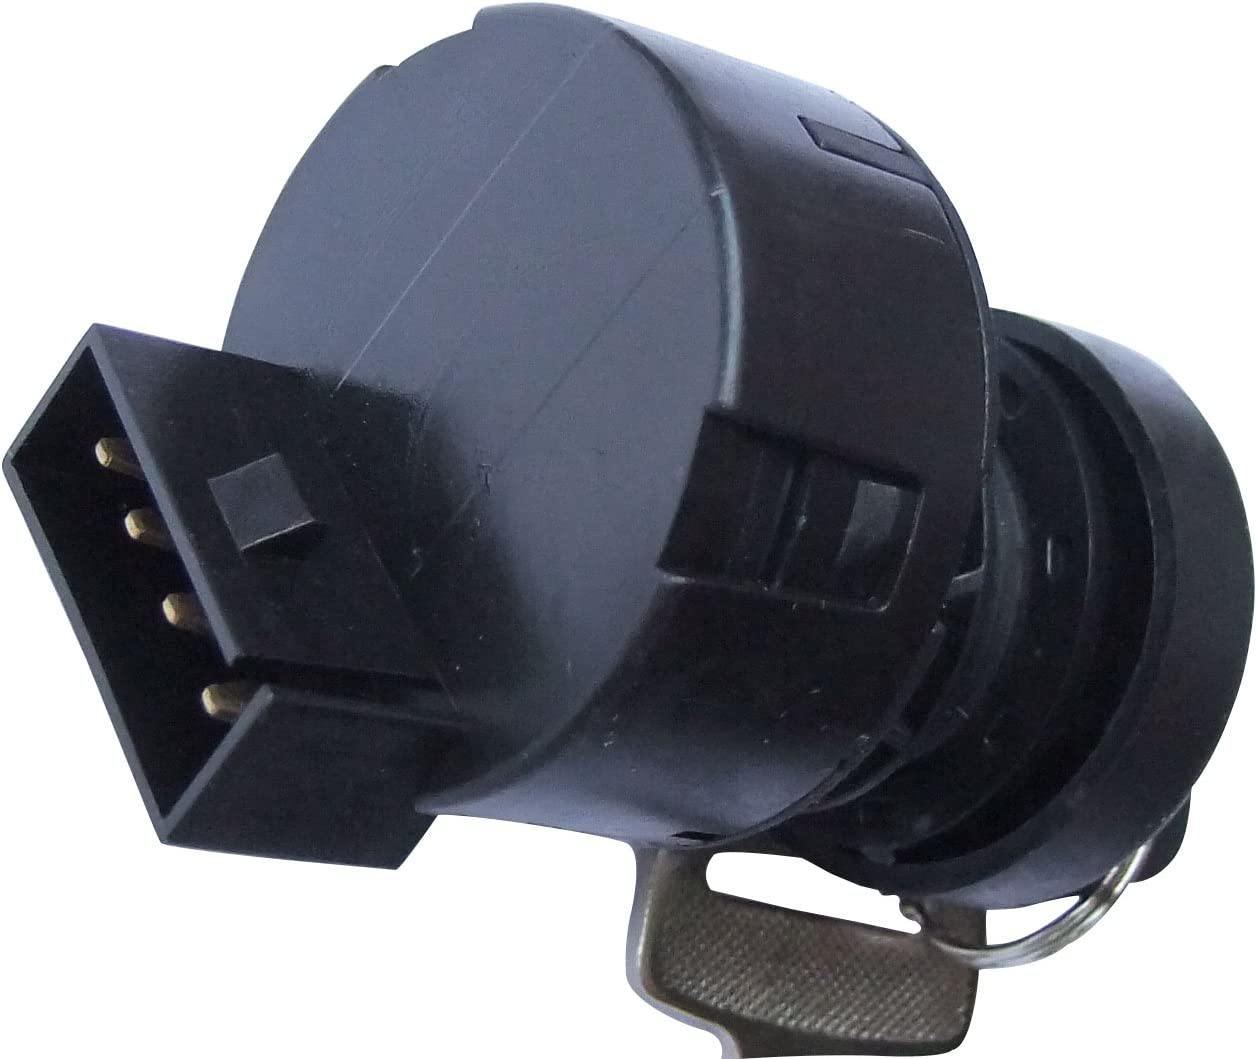 Hity Motor 4 Pin Ignition Key Switch For POLARIS SPORTSMAN 500 2000 2001 500 HO 2002 2003 ATV Replaces 4012163//4110264